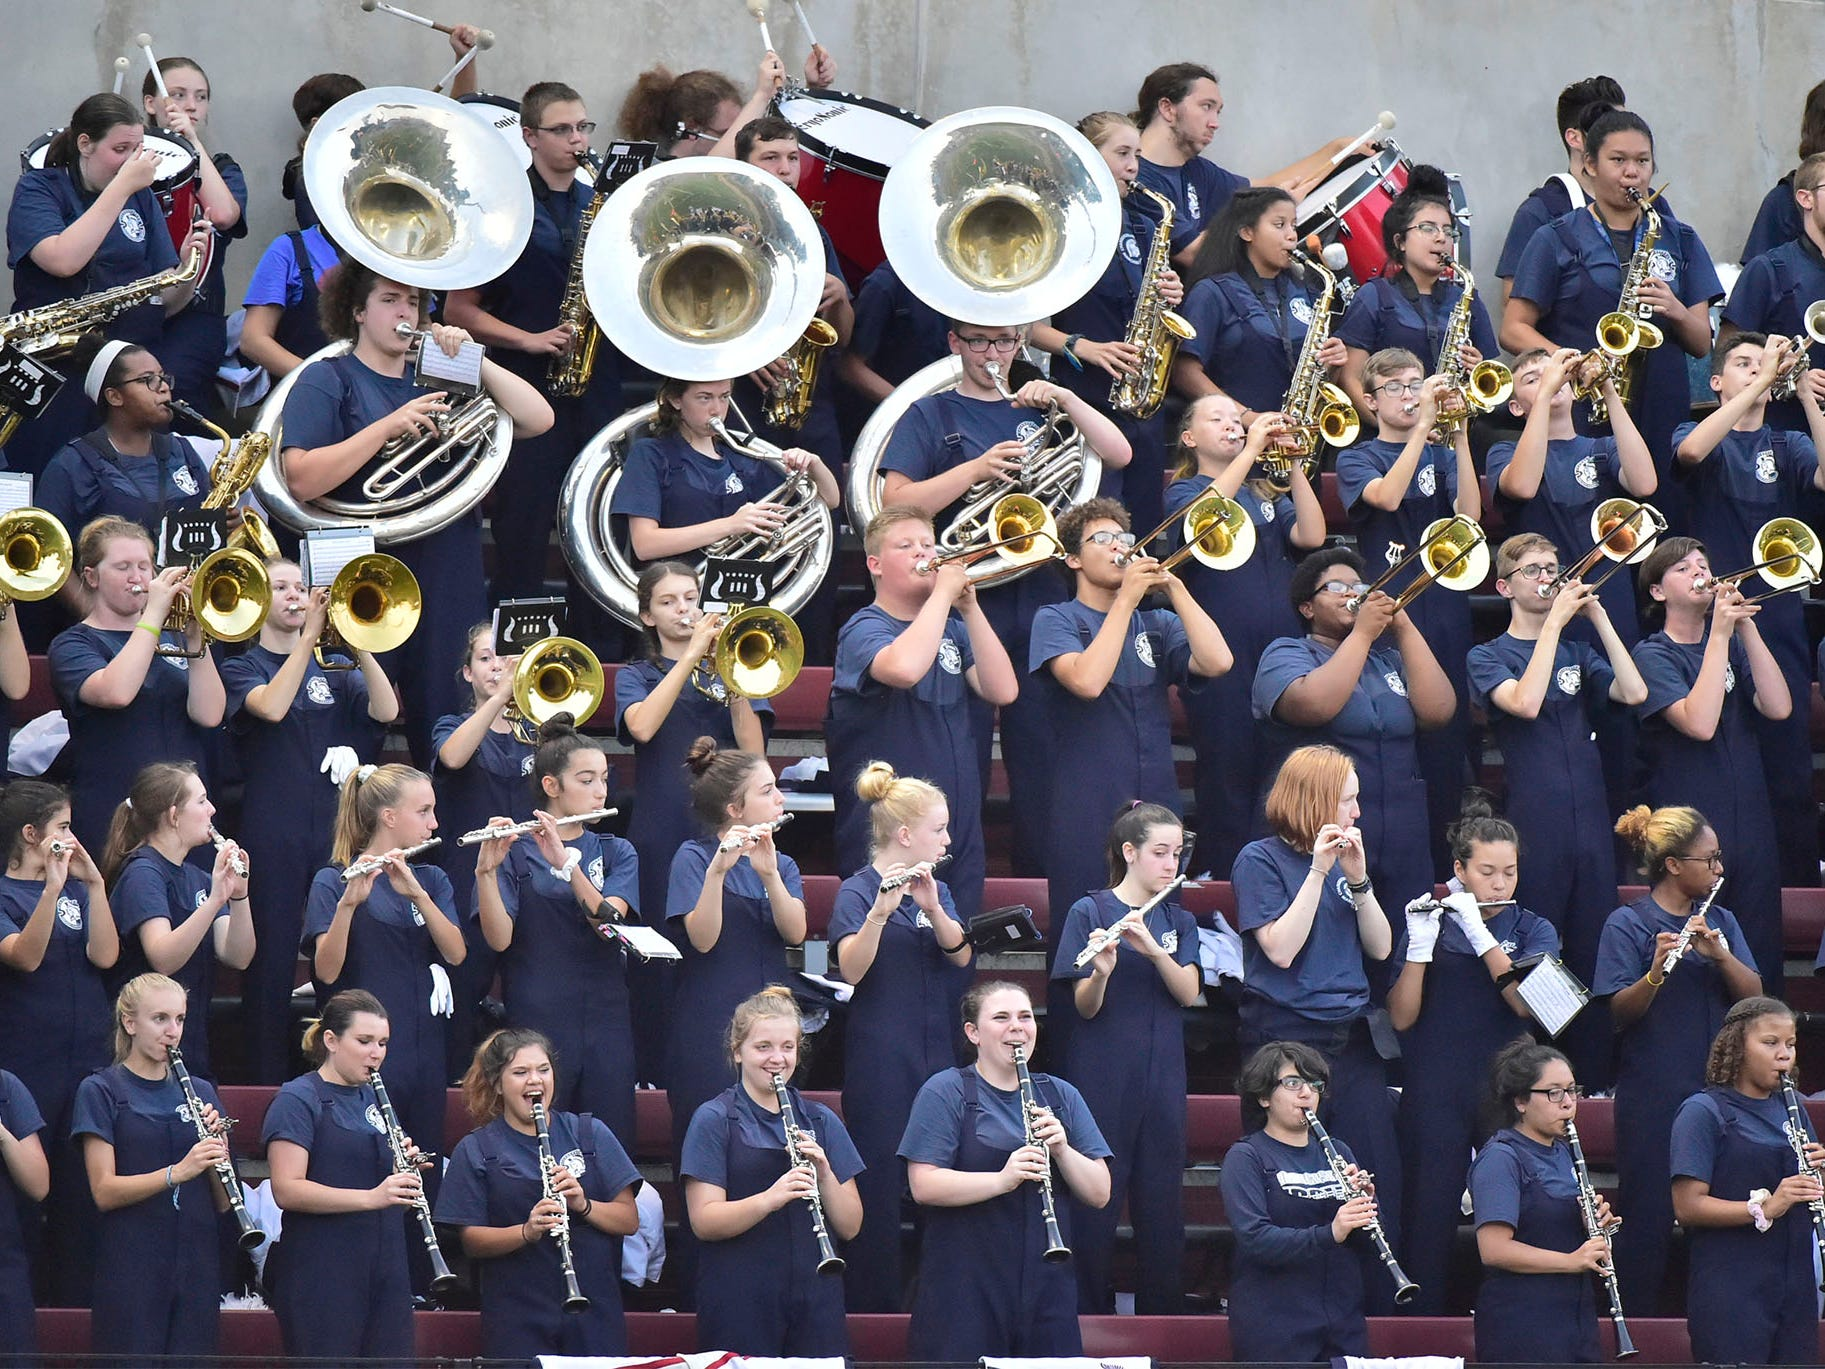 Chambersburg, 4-0 suffered their first loss of the season against undefeated State College in PIAA road game on Friday, Sept. 21, 2018.